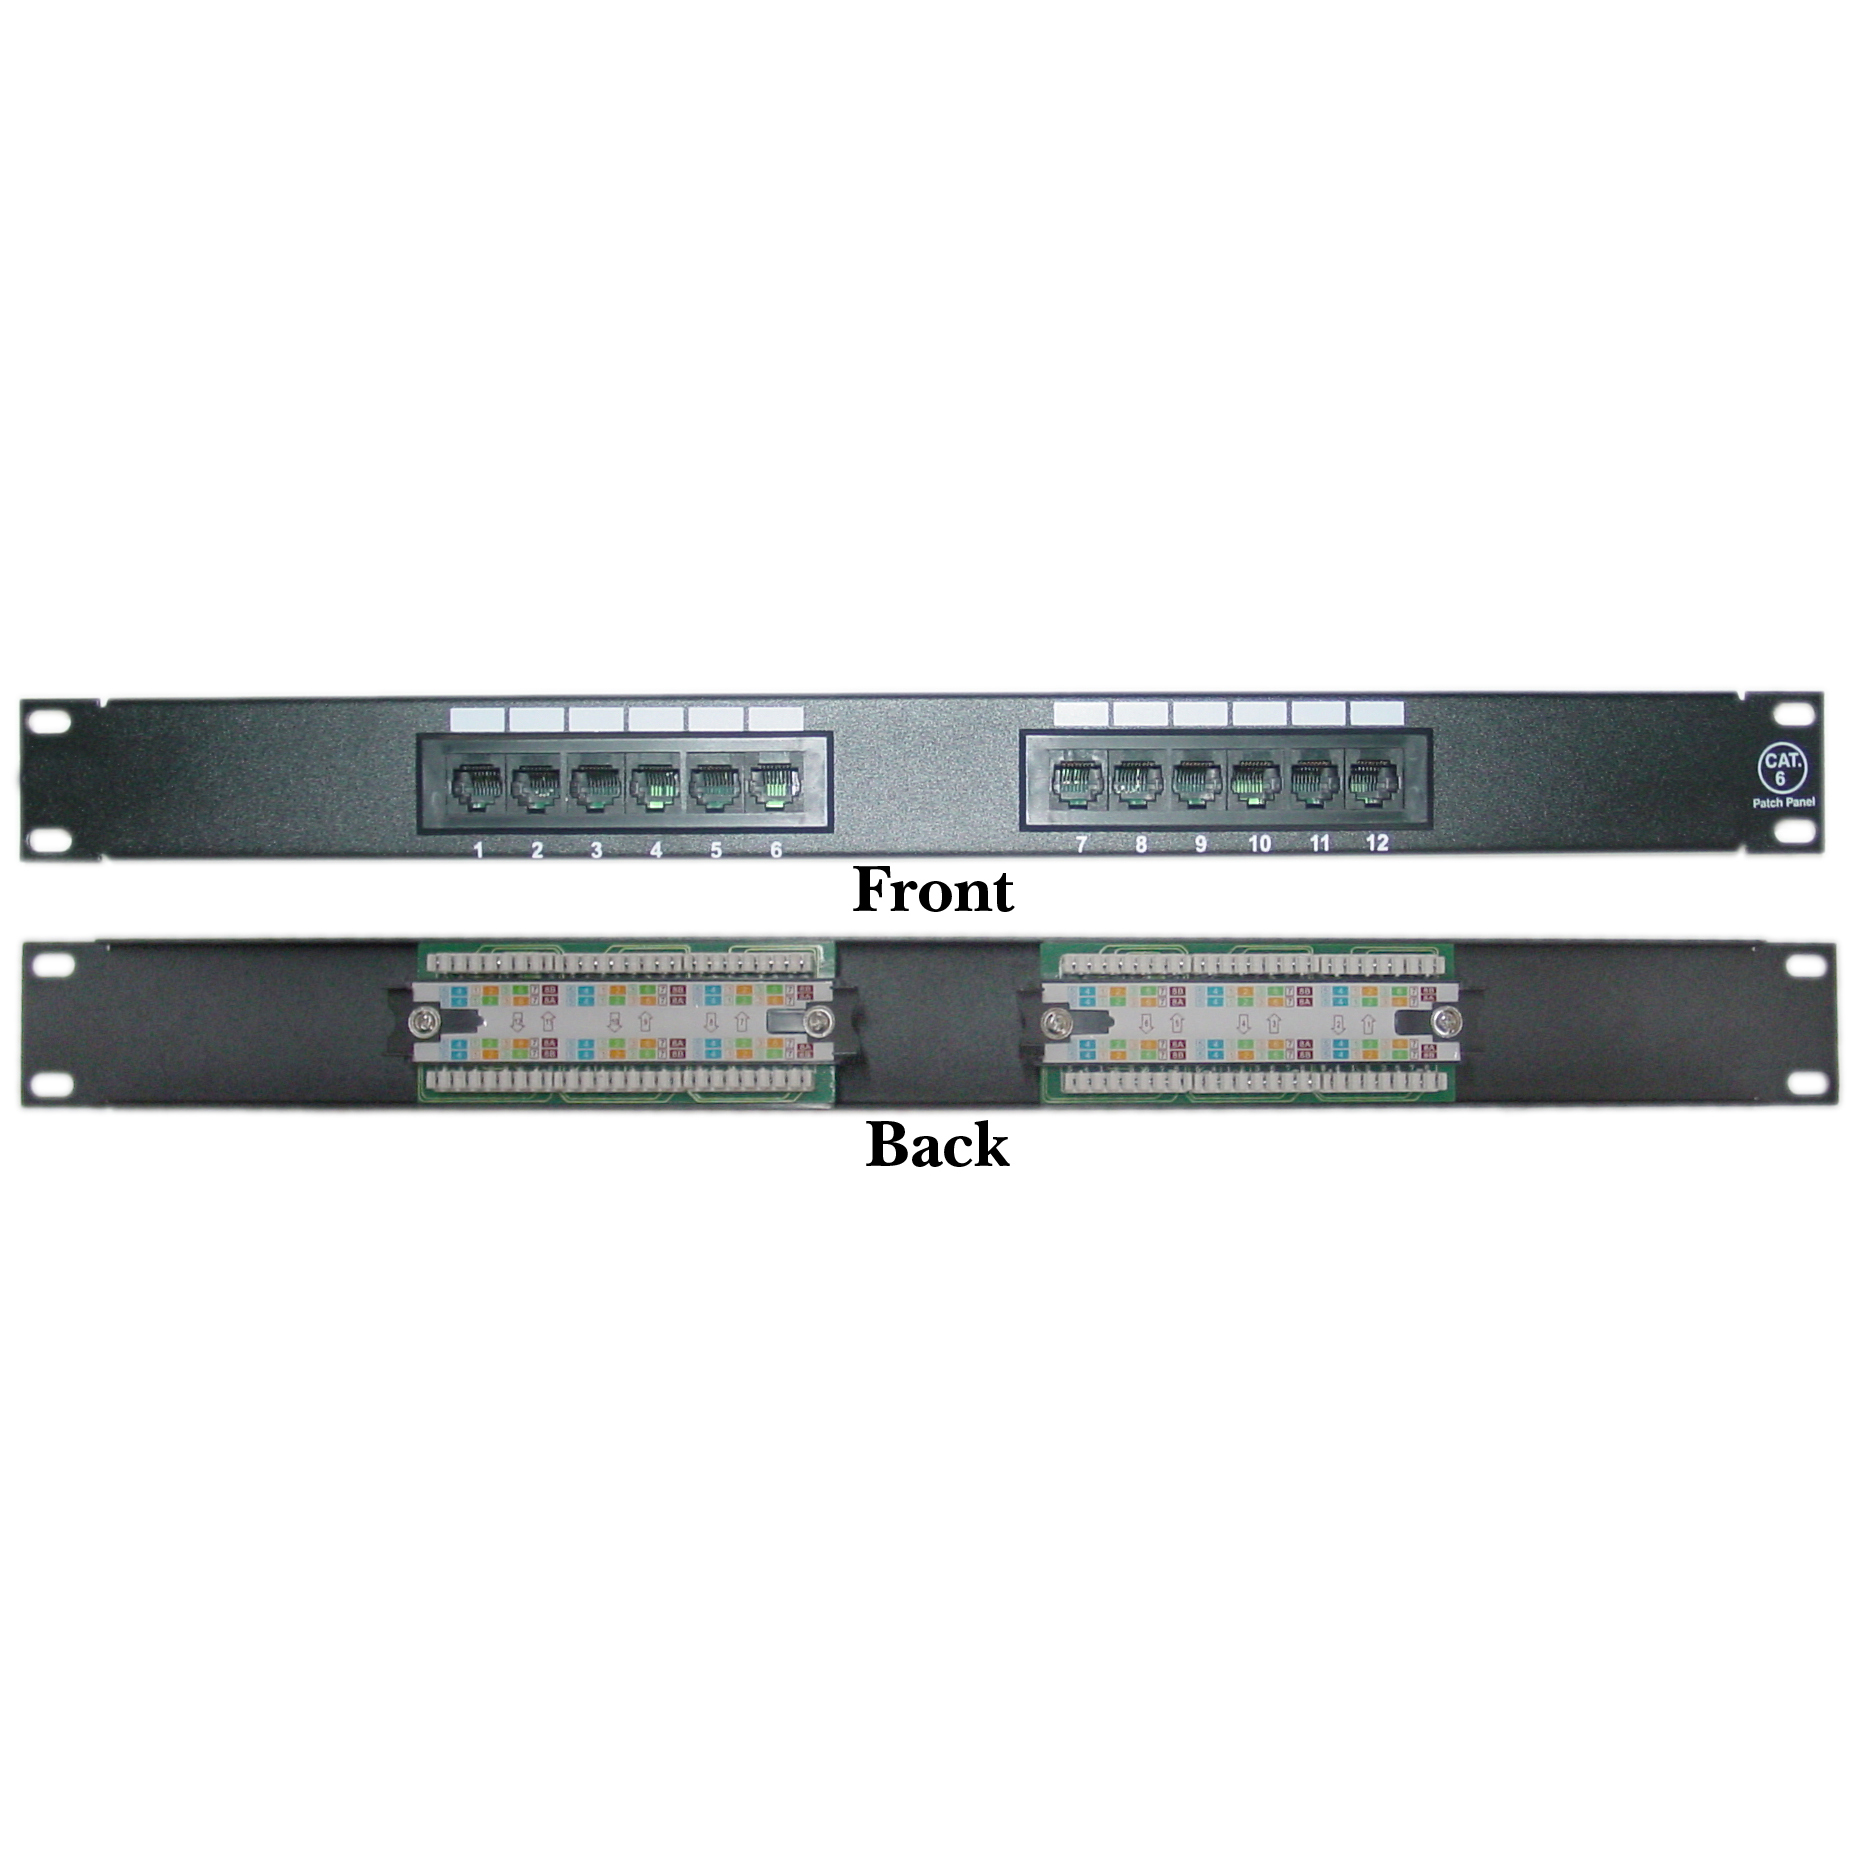 12 port cat6 patch panel 110 type 568a 568b compatible rackmount 12 port cat6 patch panel horizontal 110 type 568a 568b compatible asfbconference2016 Choice Image